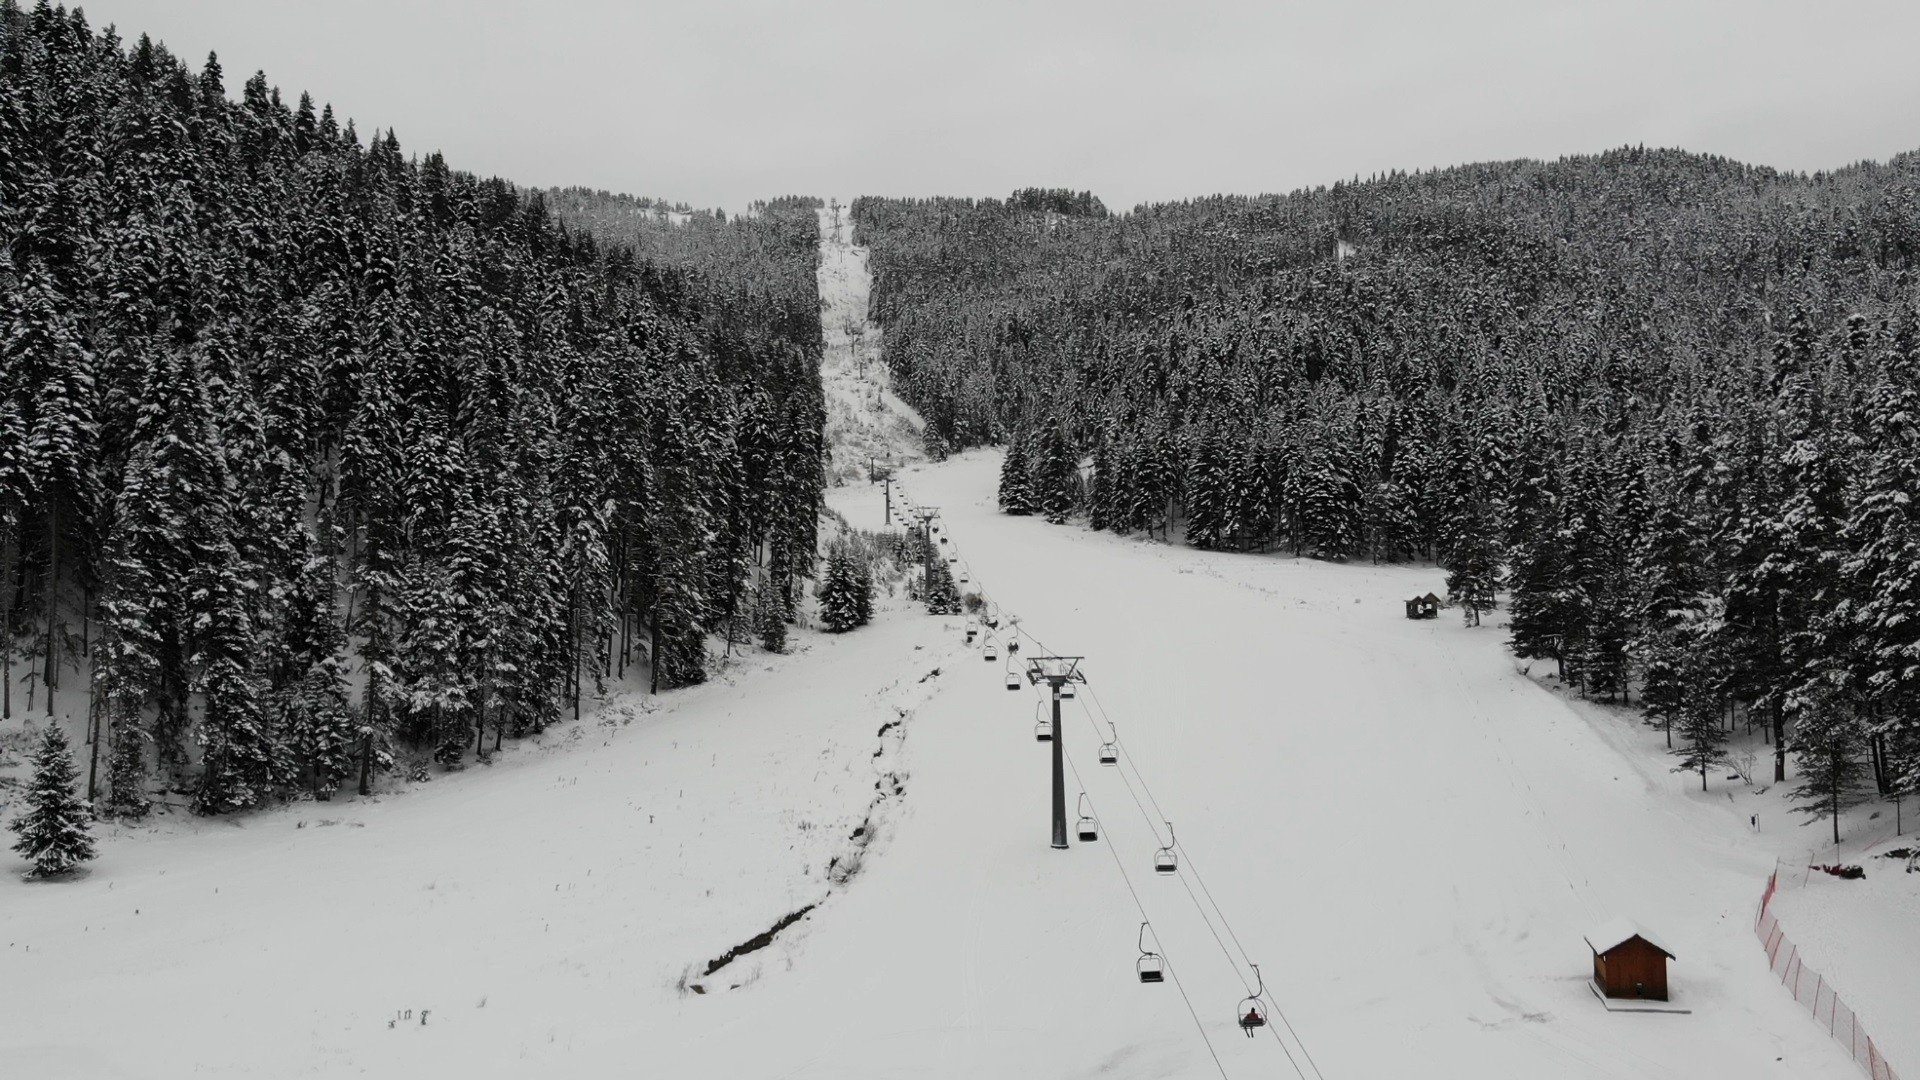 The Ilgaz mountains are home to one of the top 10 ski resorts in Turkey. (IHA Photo)